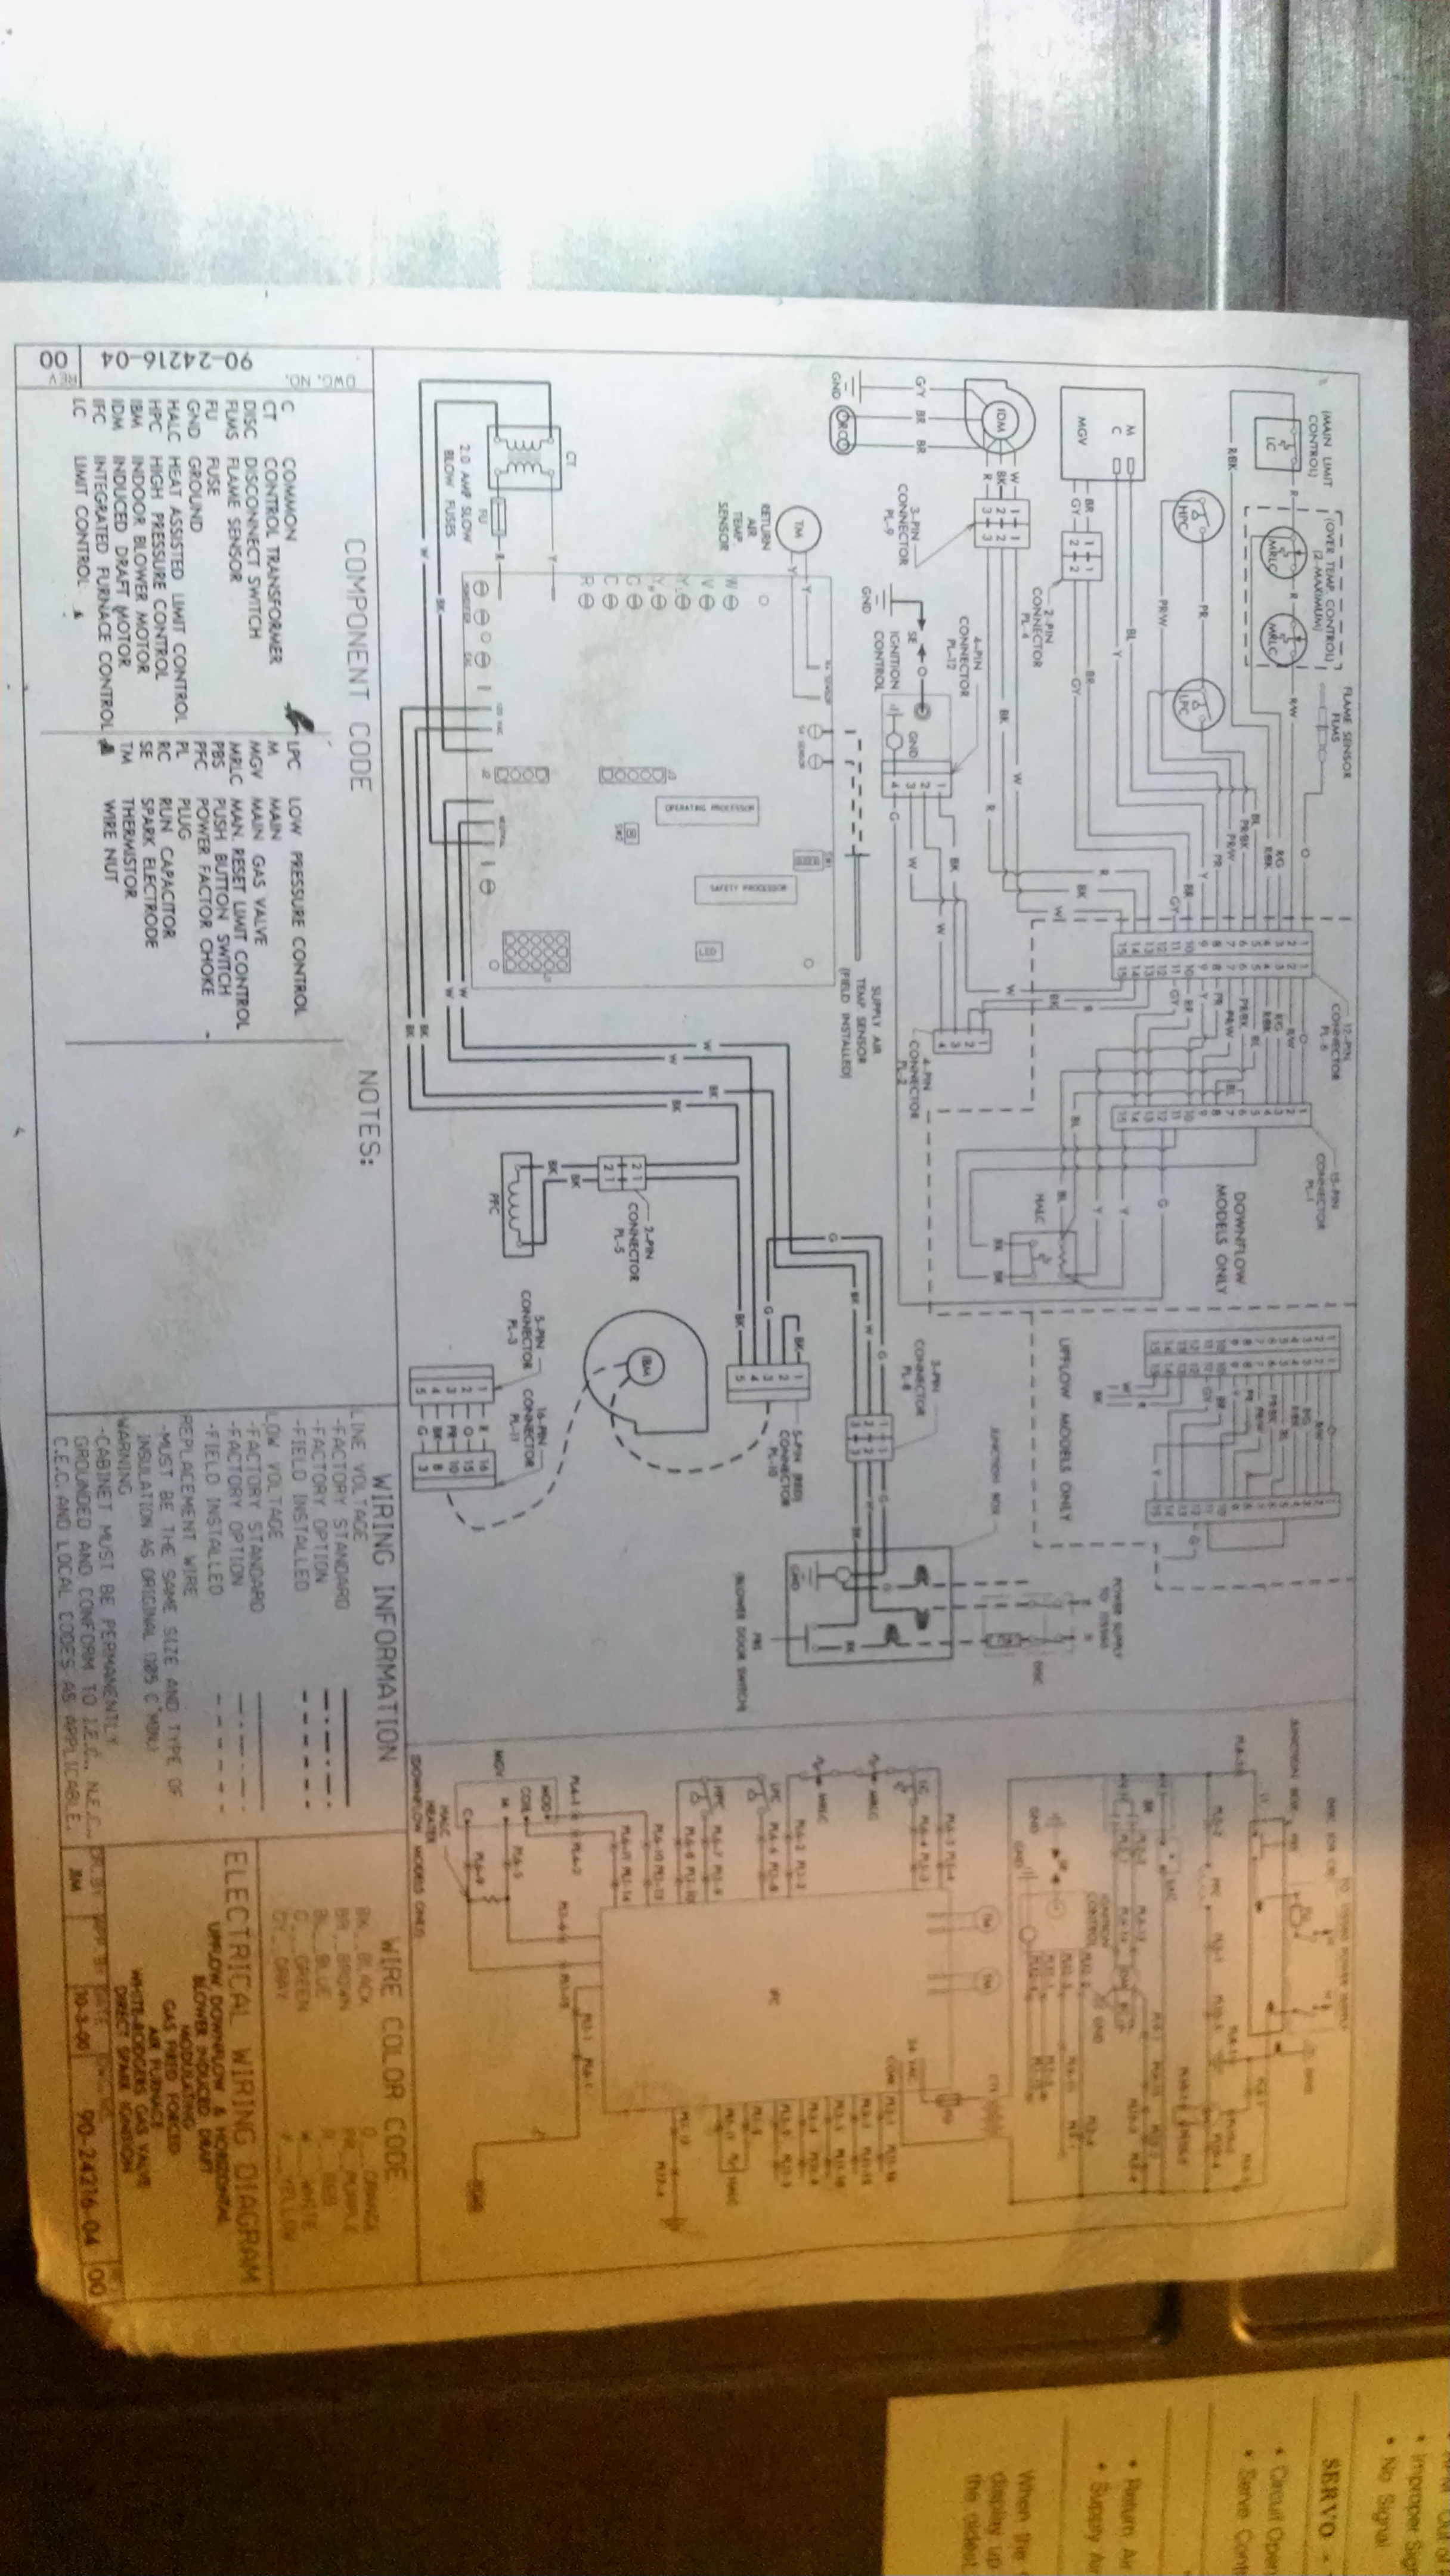 Wiring Diagram For Propane Heater Trusted Diagrams Vornado Ruud Achiever Defrost Board Carrier Circuit